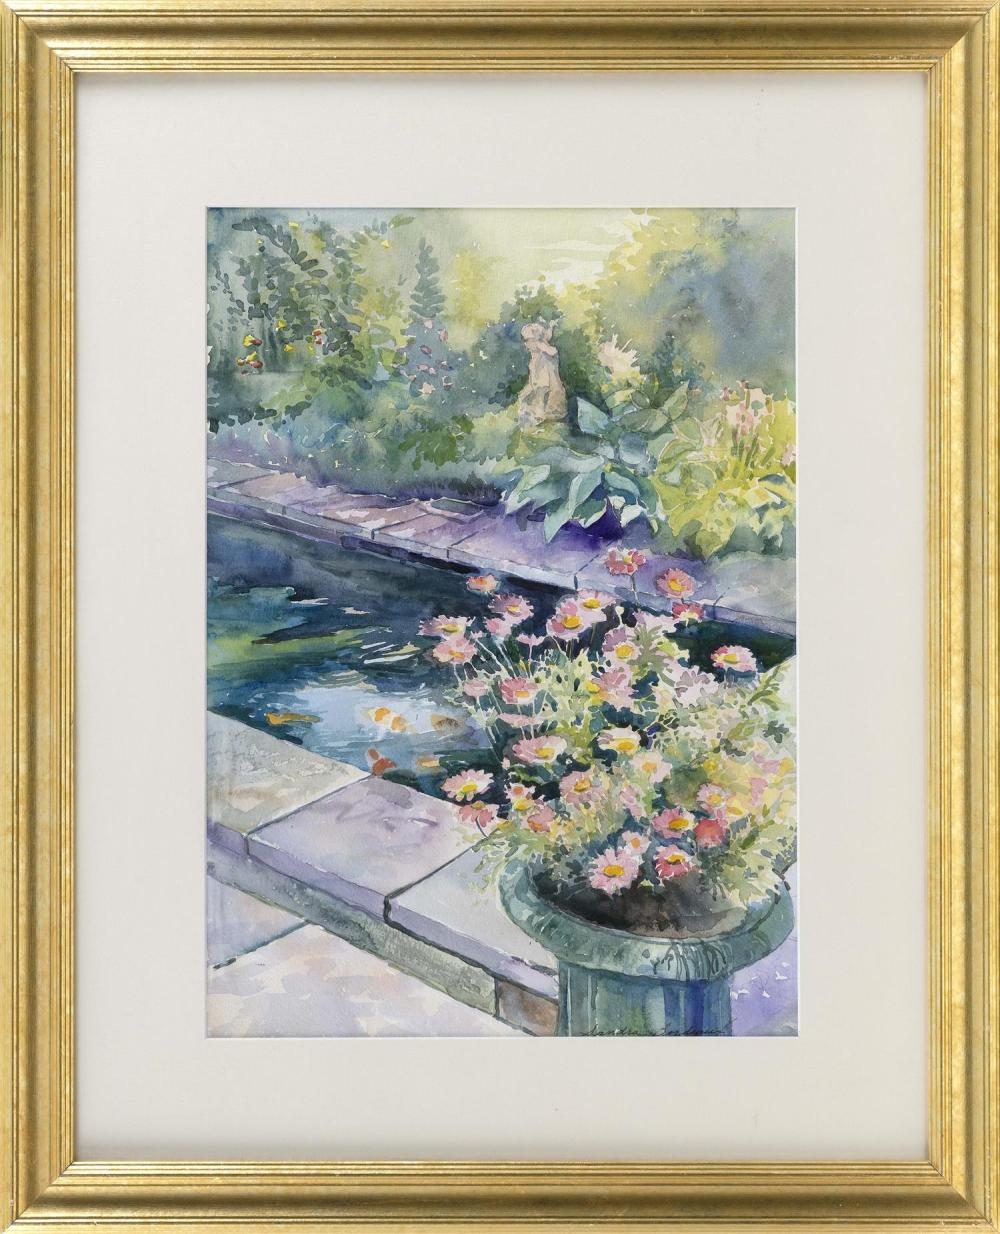 "SANDRA BOURDEAUX, Cape Cod, Contemporary, Koi pond., Watercolor on paper, 21"" x 15"" sight. Framed 32"" x 25.5""."